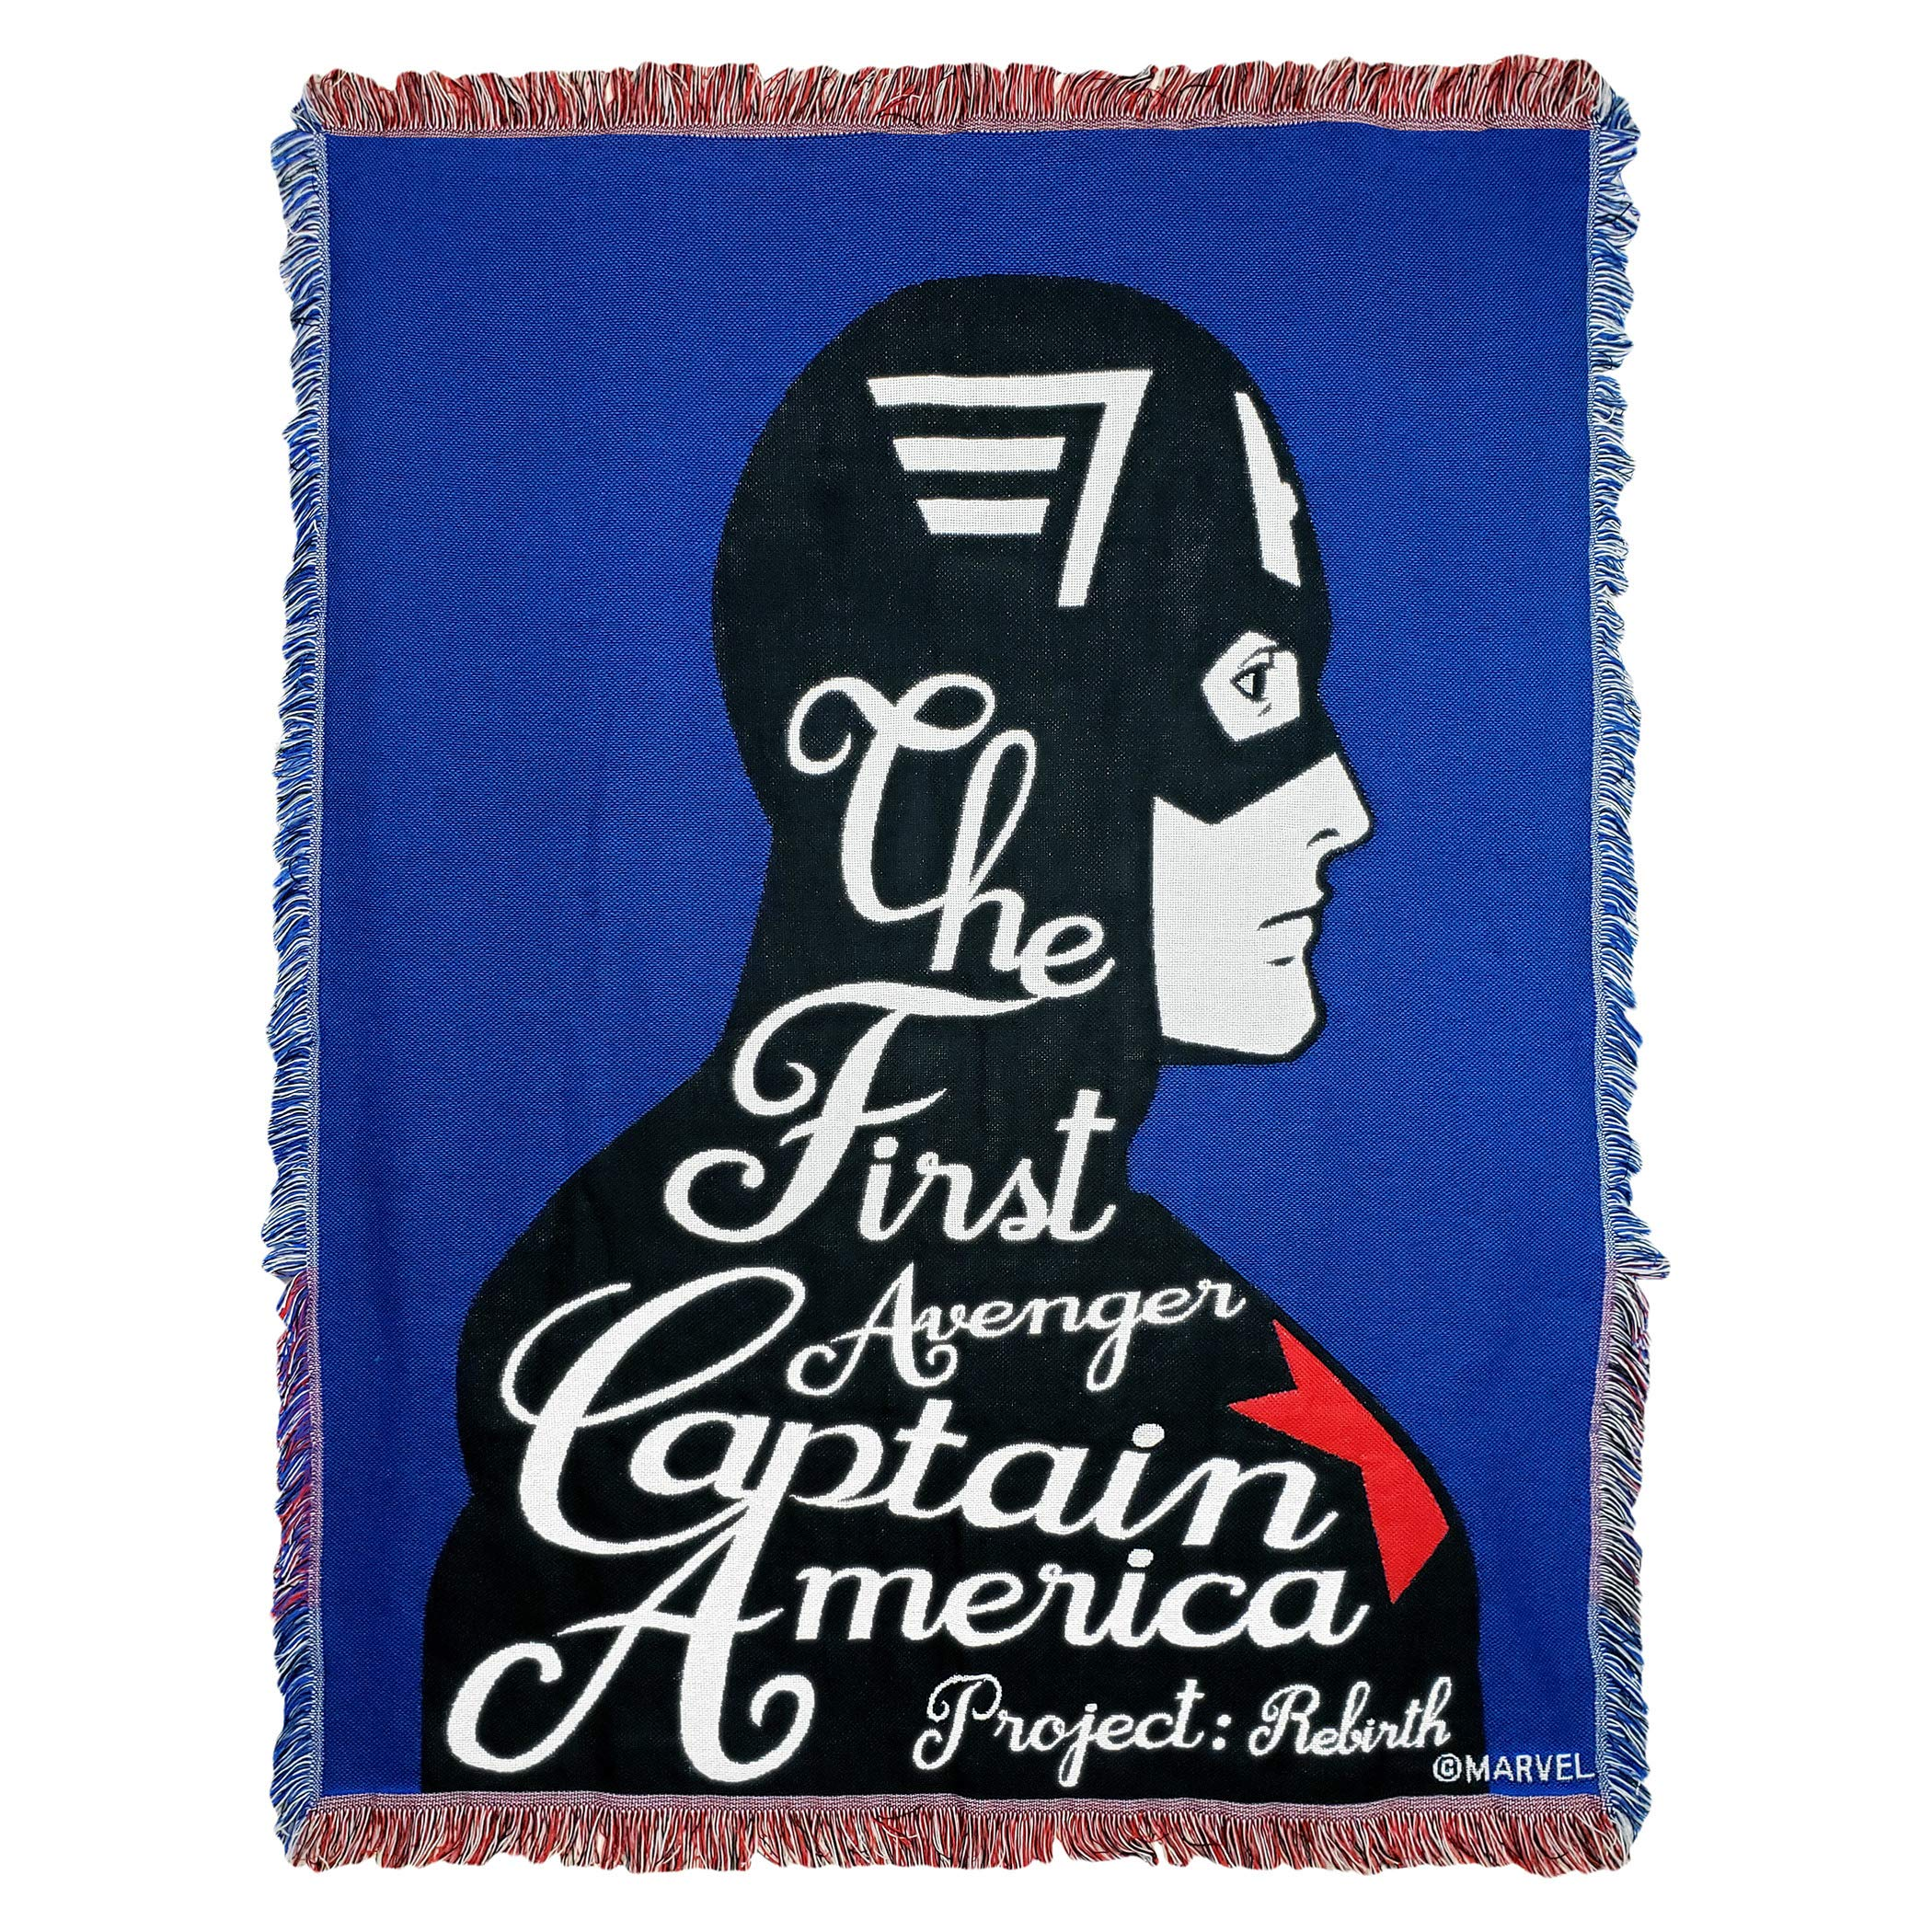 Marvel's Avengers Endgame, ''Project Rebirth'' Woven Jacquard Throw Blanket, 46'' x 60'', Multi Color